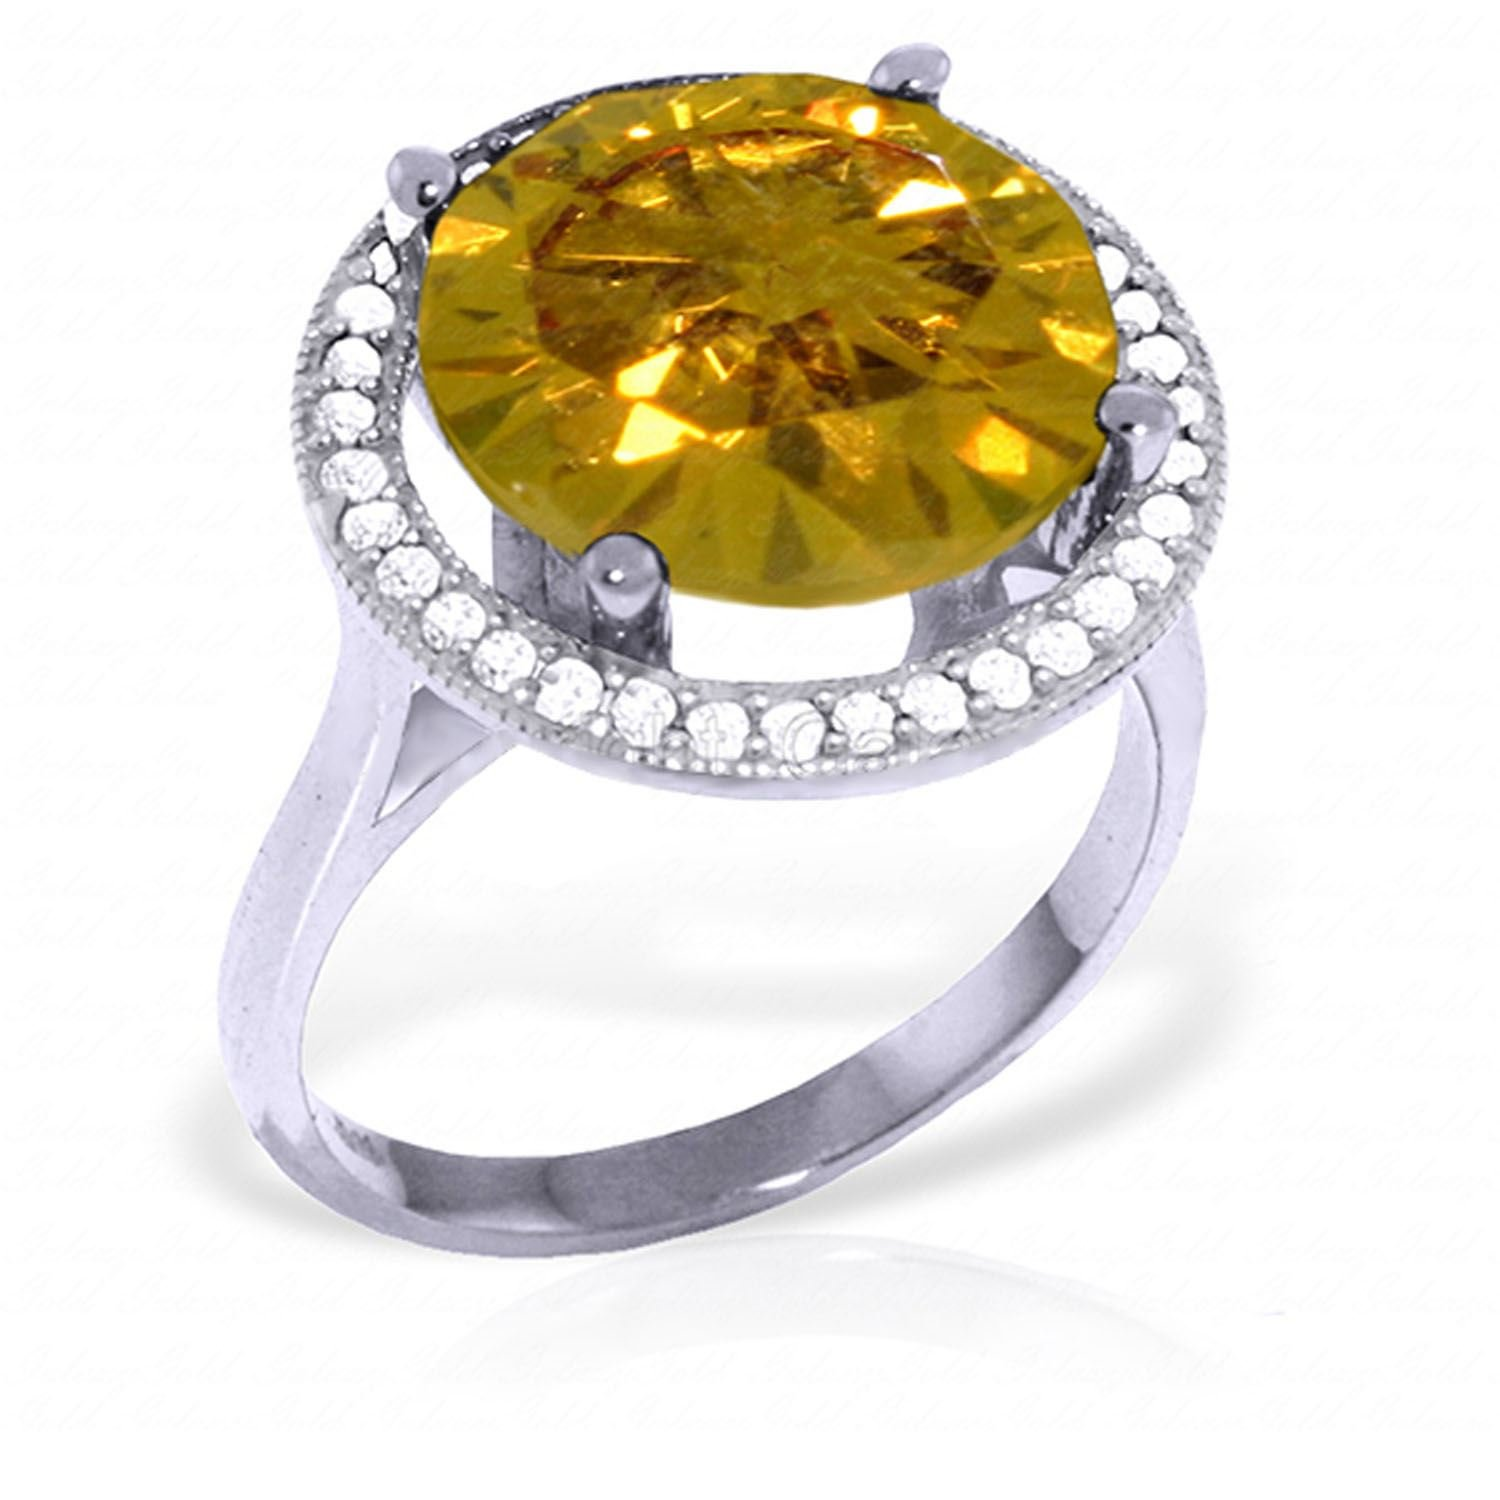 ALARRI 6.2 Carat 14K Solid White Gold Conjure Up Citrine Diamond Ring With Ring Size 11